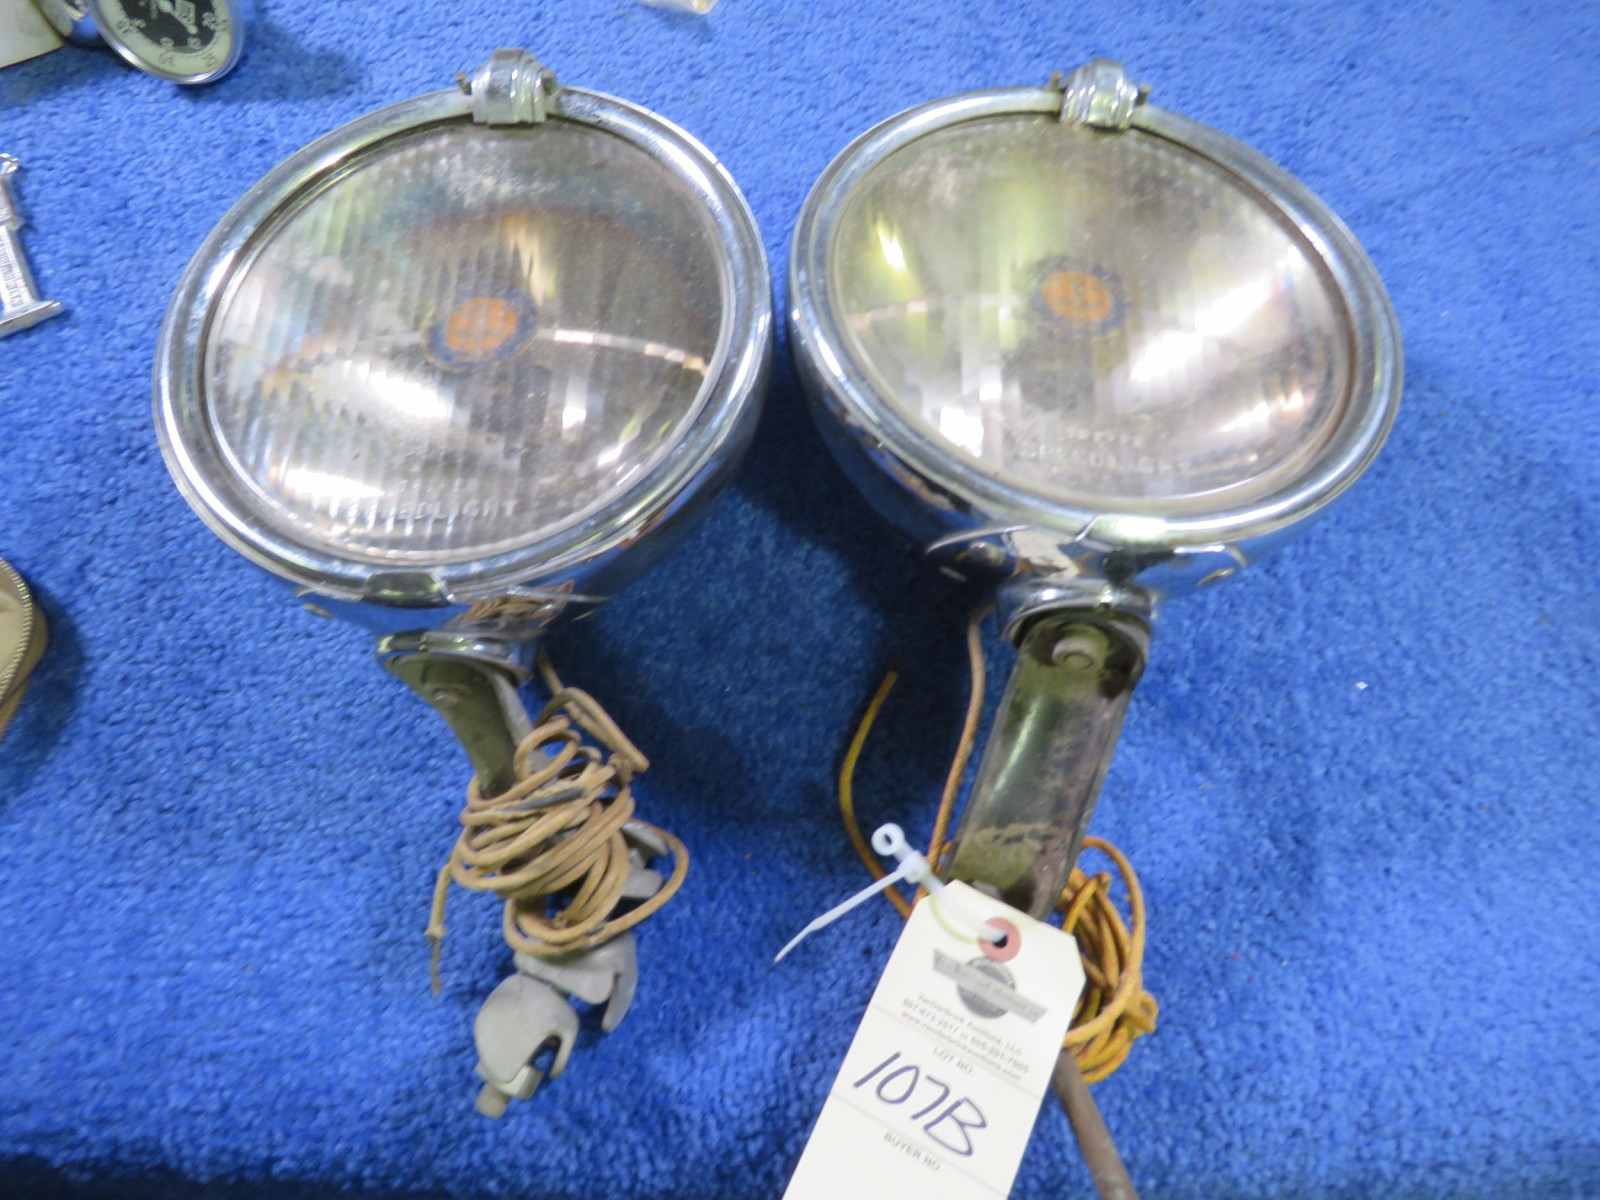 Vintage pair of Running Lights - Image 1